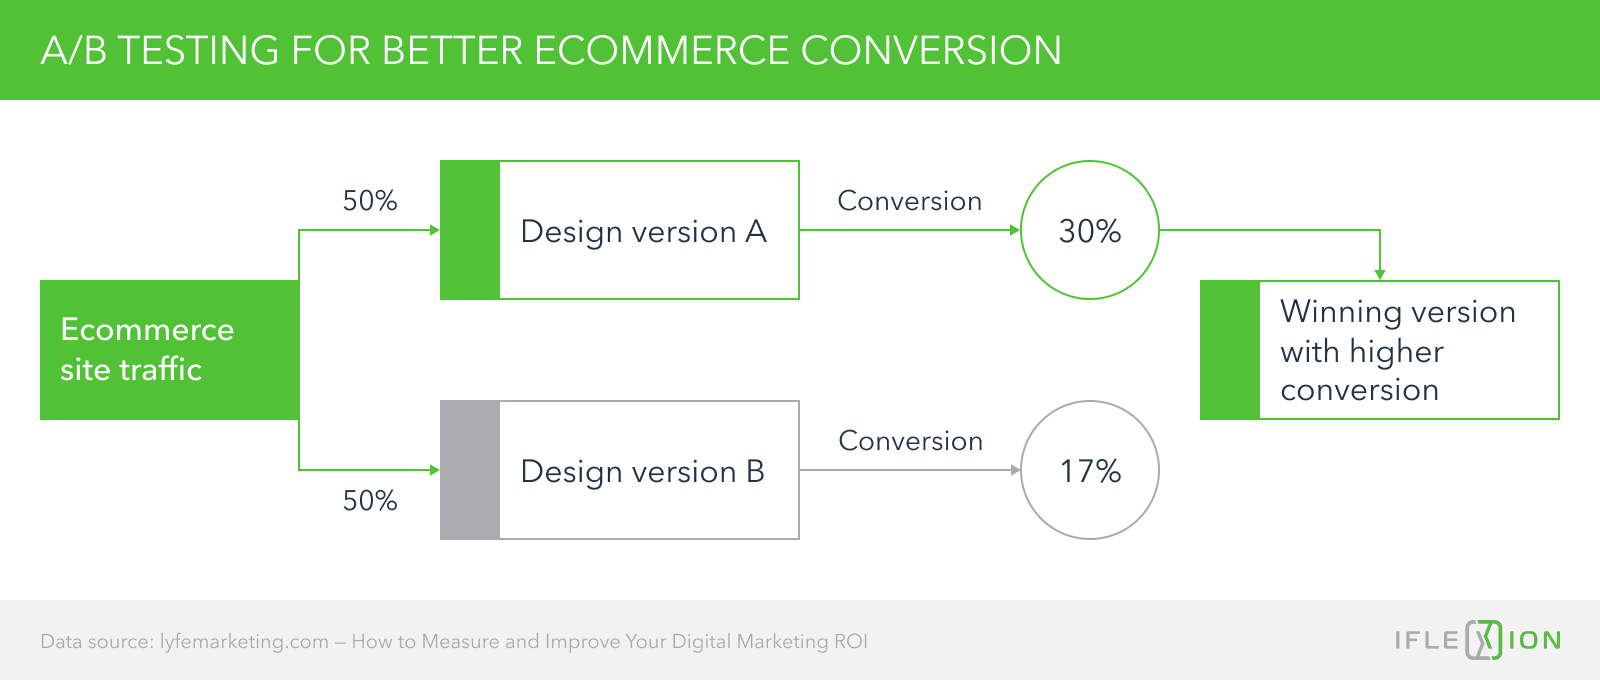 A/B testing for better ecommerce conversion